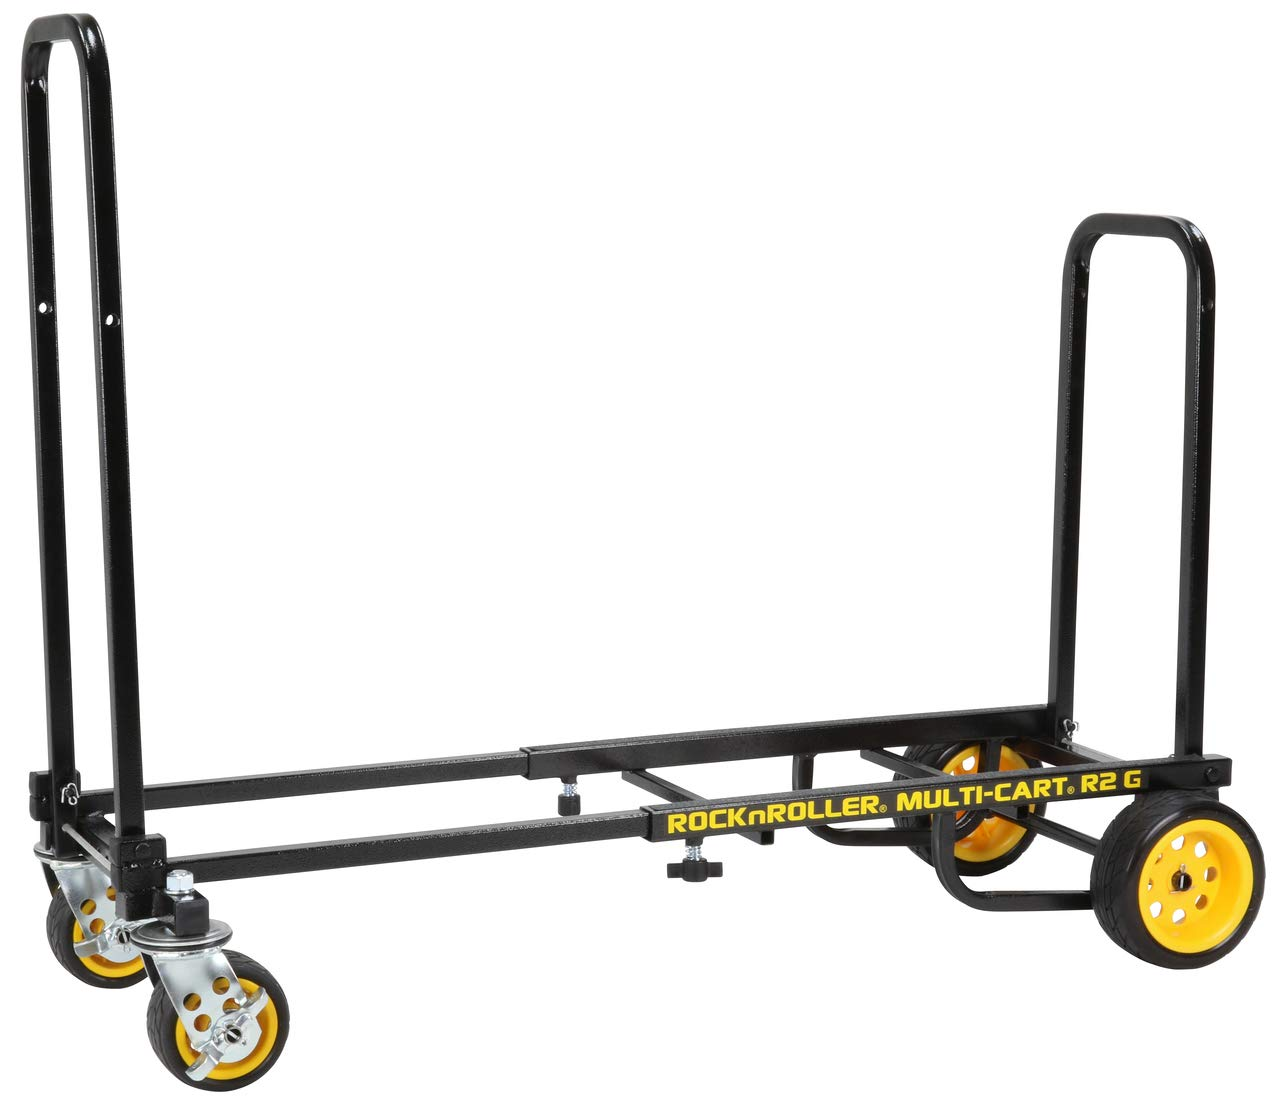 Rock-N-Roller R2G (Micro Ground Glider) 8-in-1 Folding Multi-Cart/Hand Truck/Dolly/Platform Cart/26'' to 39'' Telescoping Frame/350 lbs. Load Capacity, Black